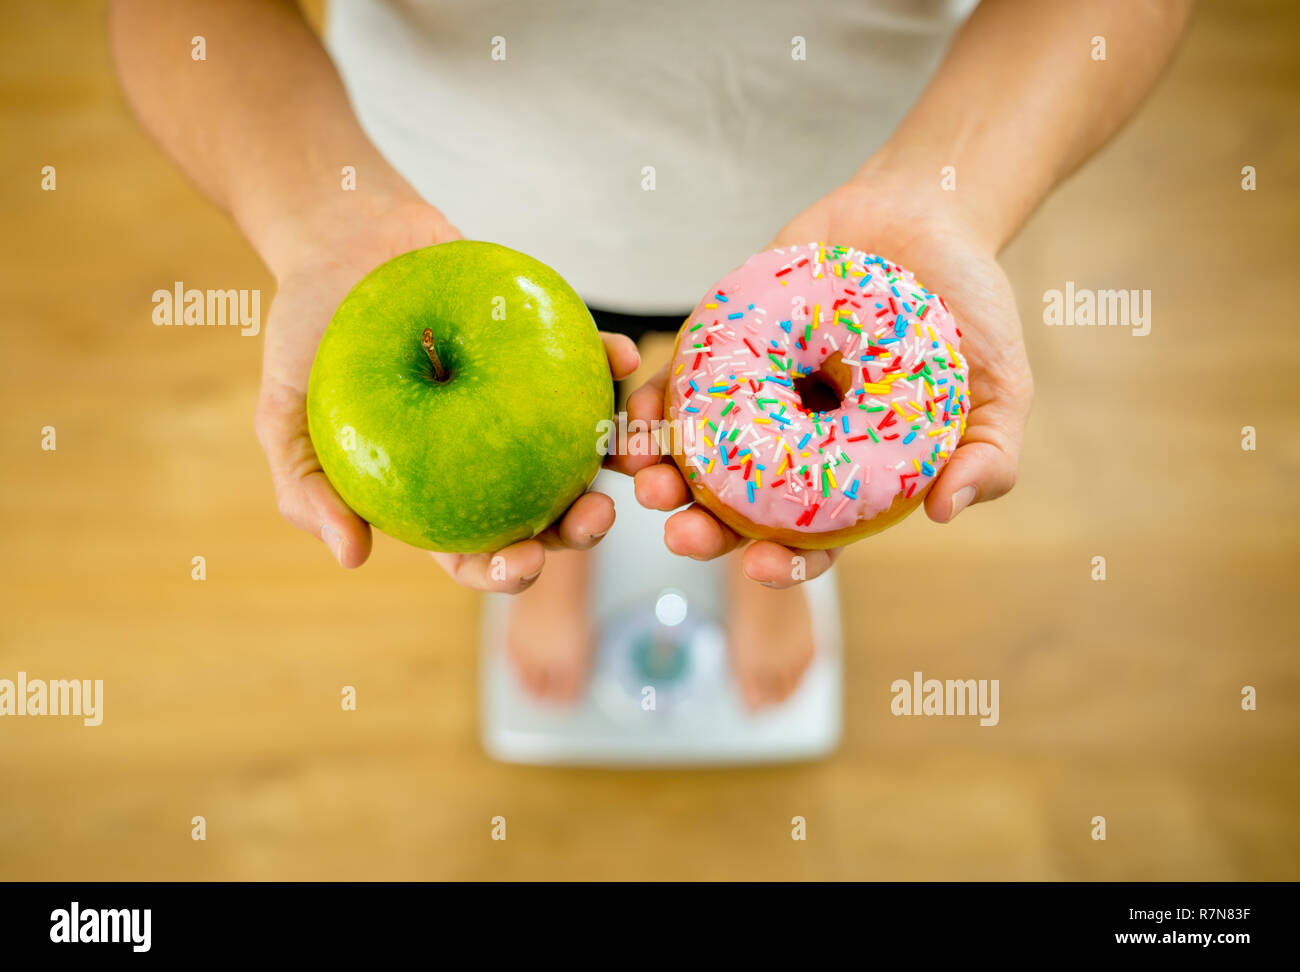 Close up of woman on scale holding on hands apple and doughnut making choice between healthy unhealthy food dessert while measuring body weight in Nut - Stock Image